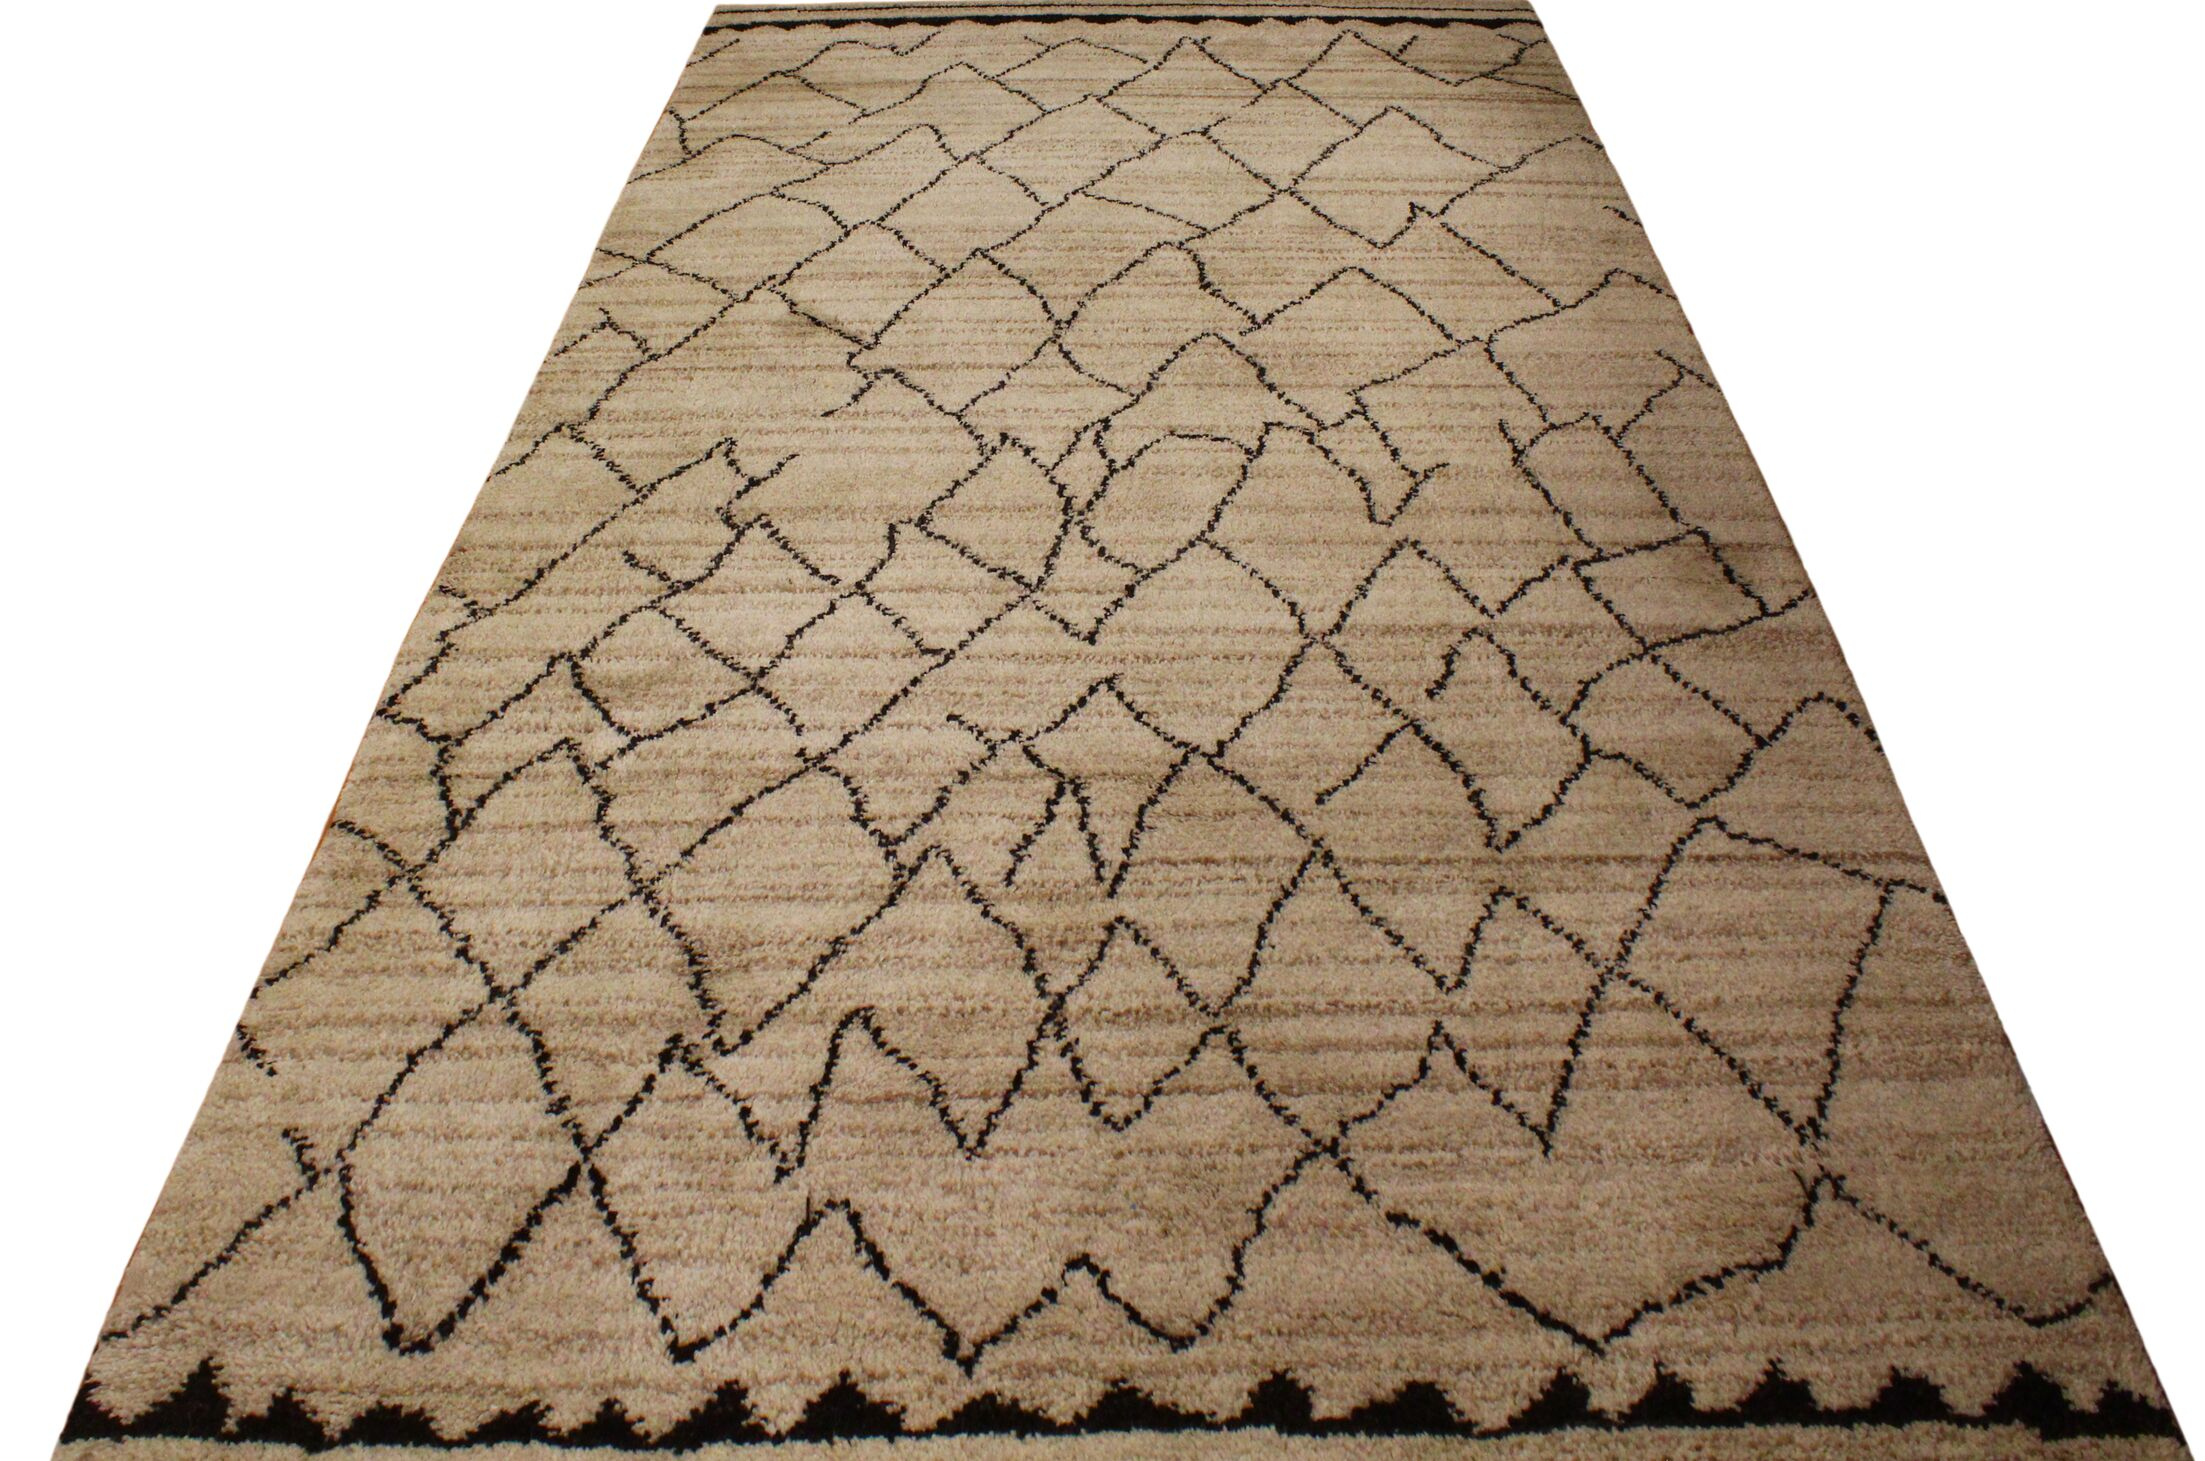 Pegues Hand Knotted Wool Tan/Dark Brown Indoor Area Rug Rug Size: Rectangle 5' x 8'